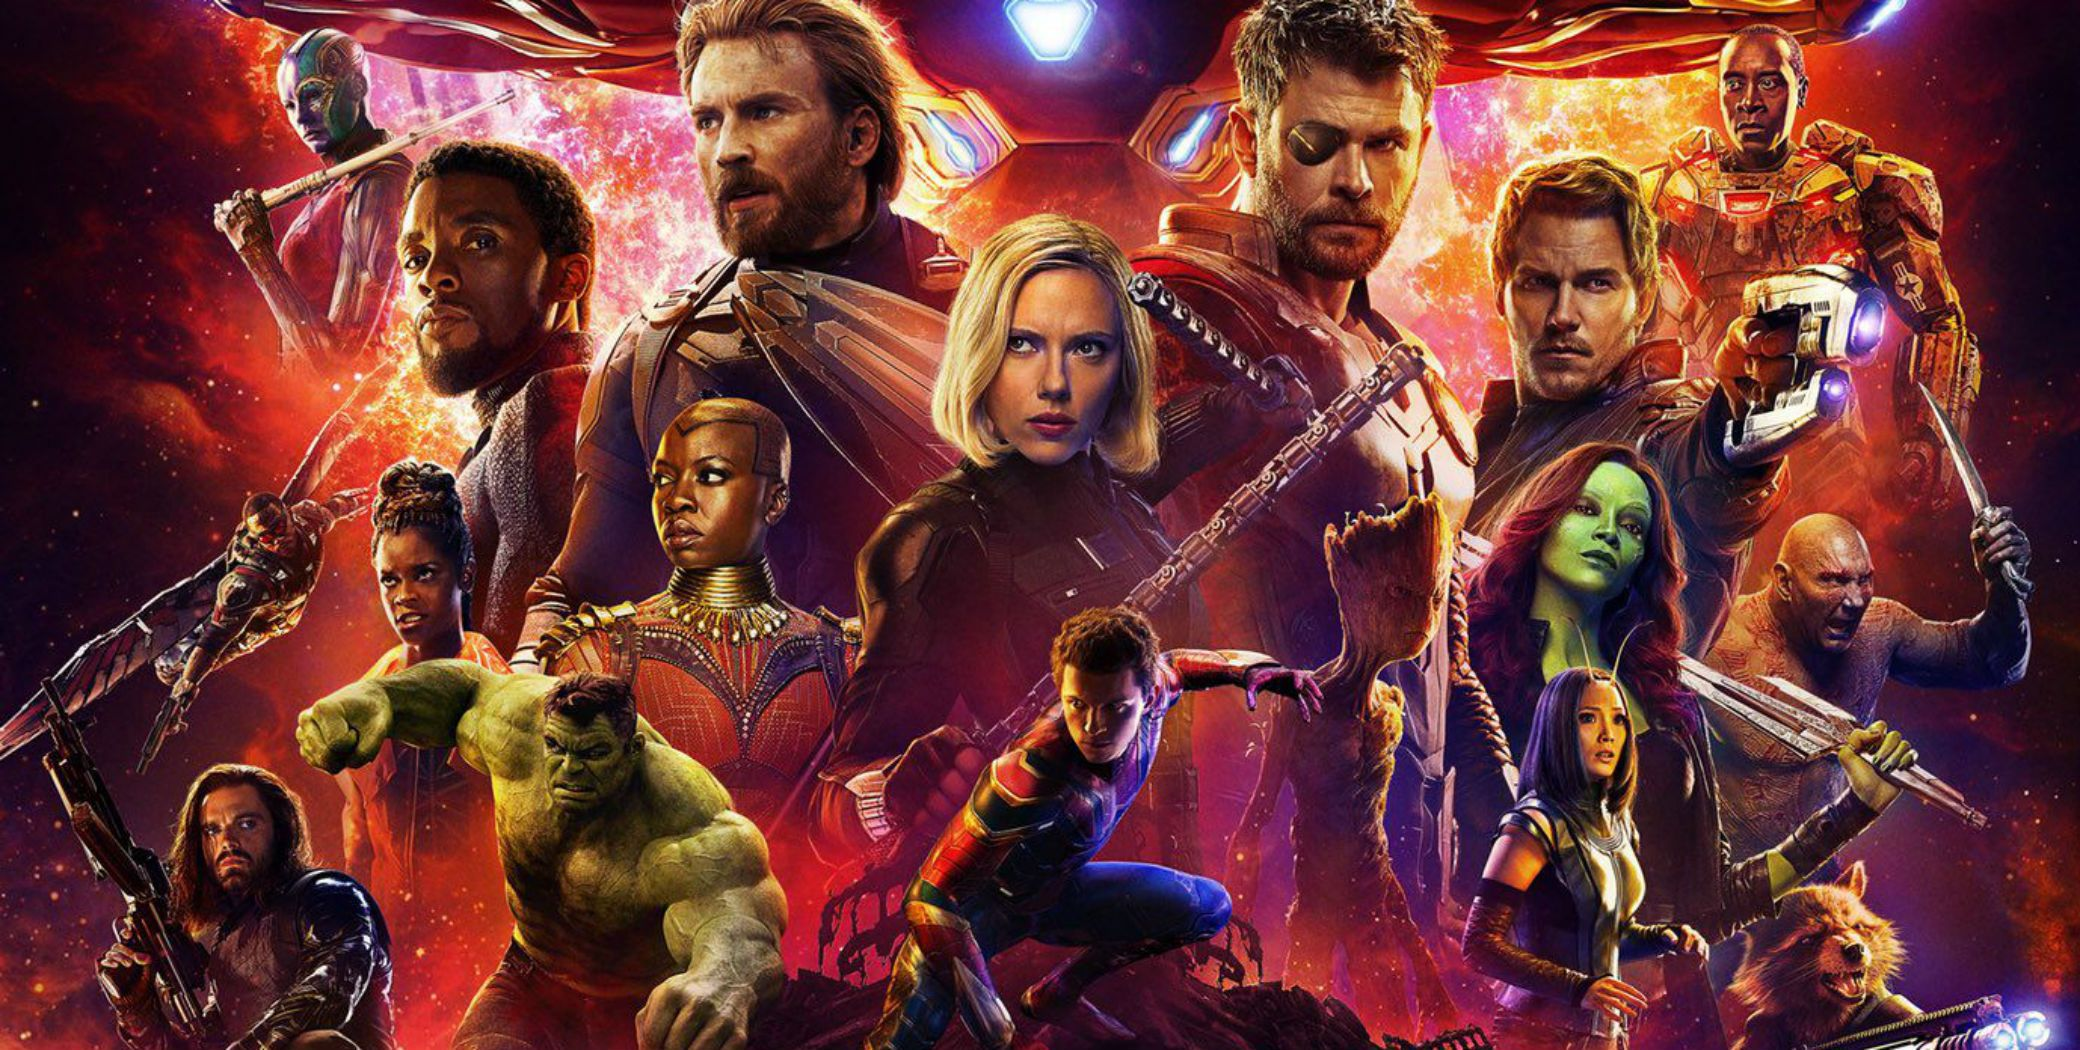 Avengers Infinity War and Endgame (2018-19) Movie Poster